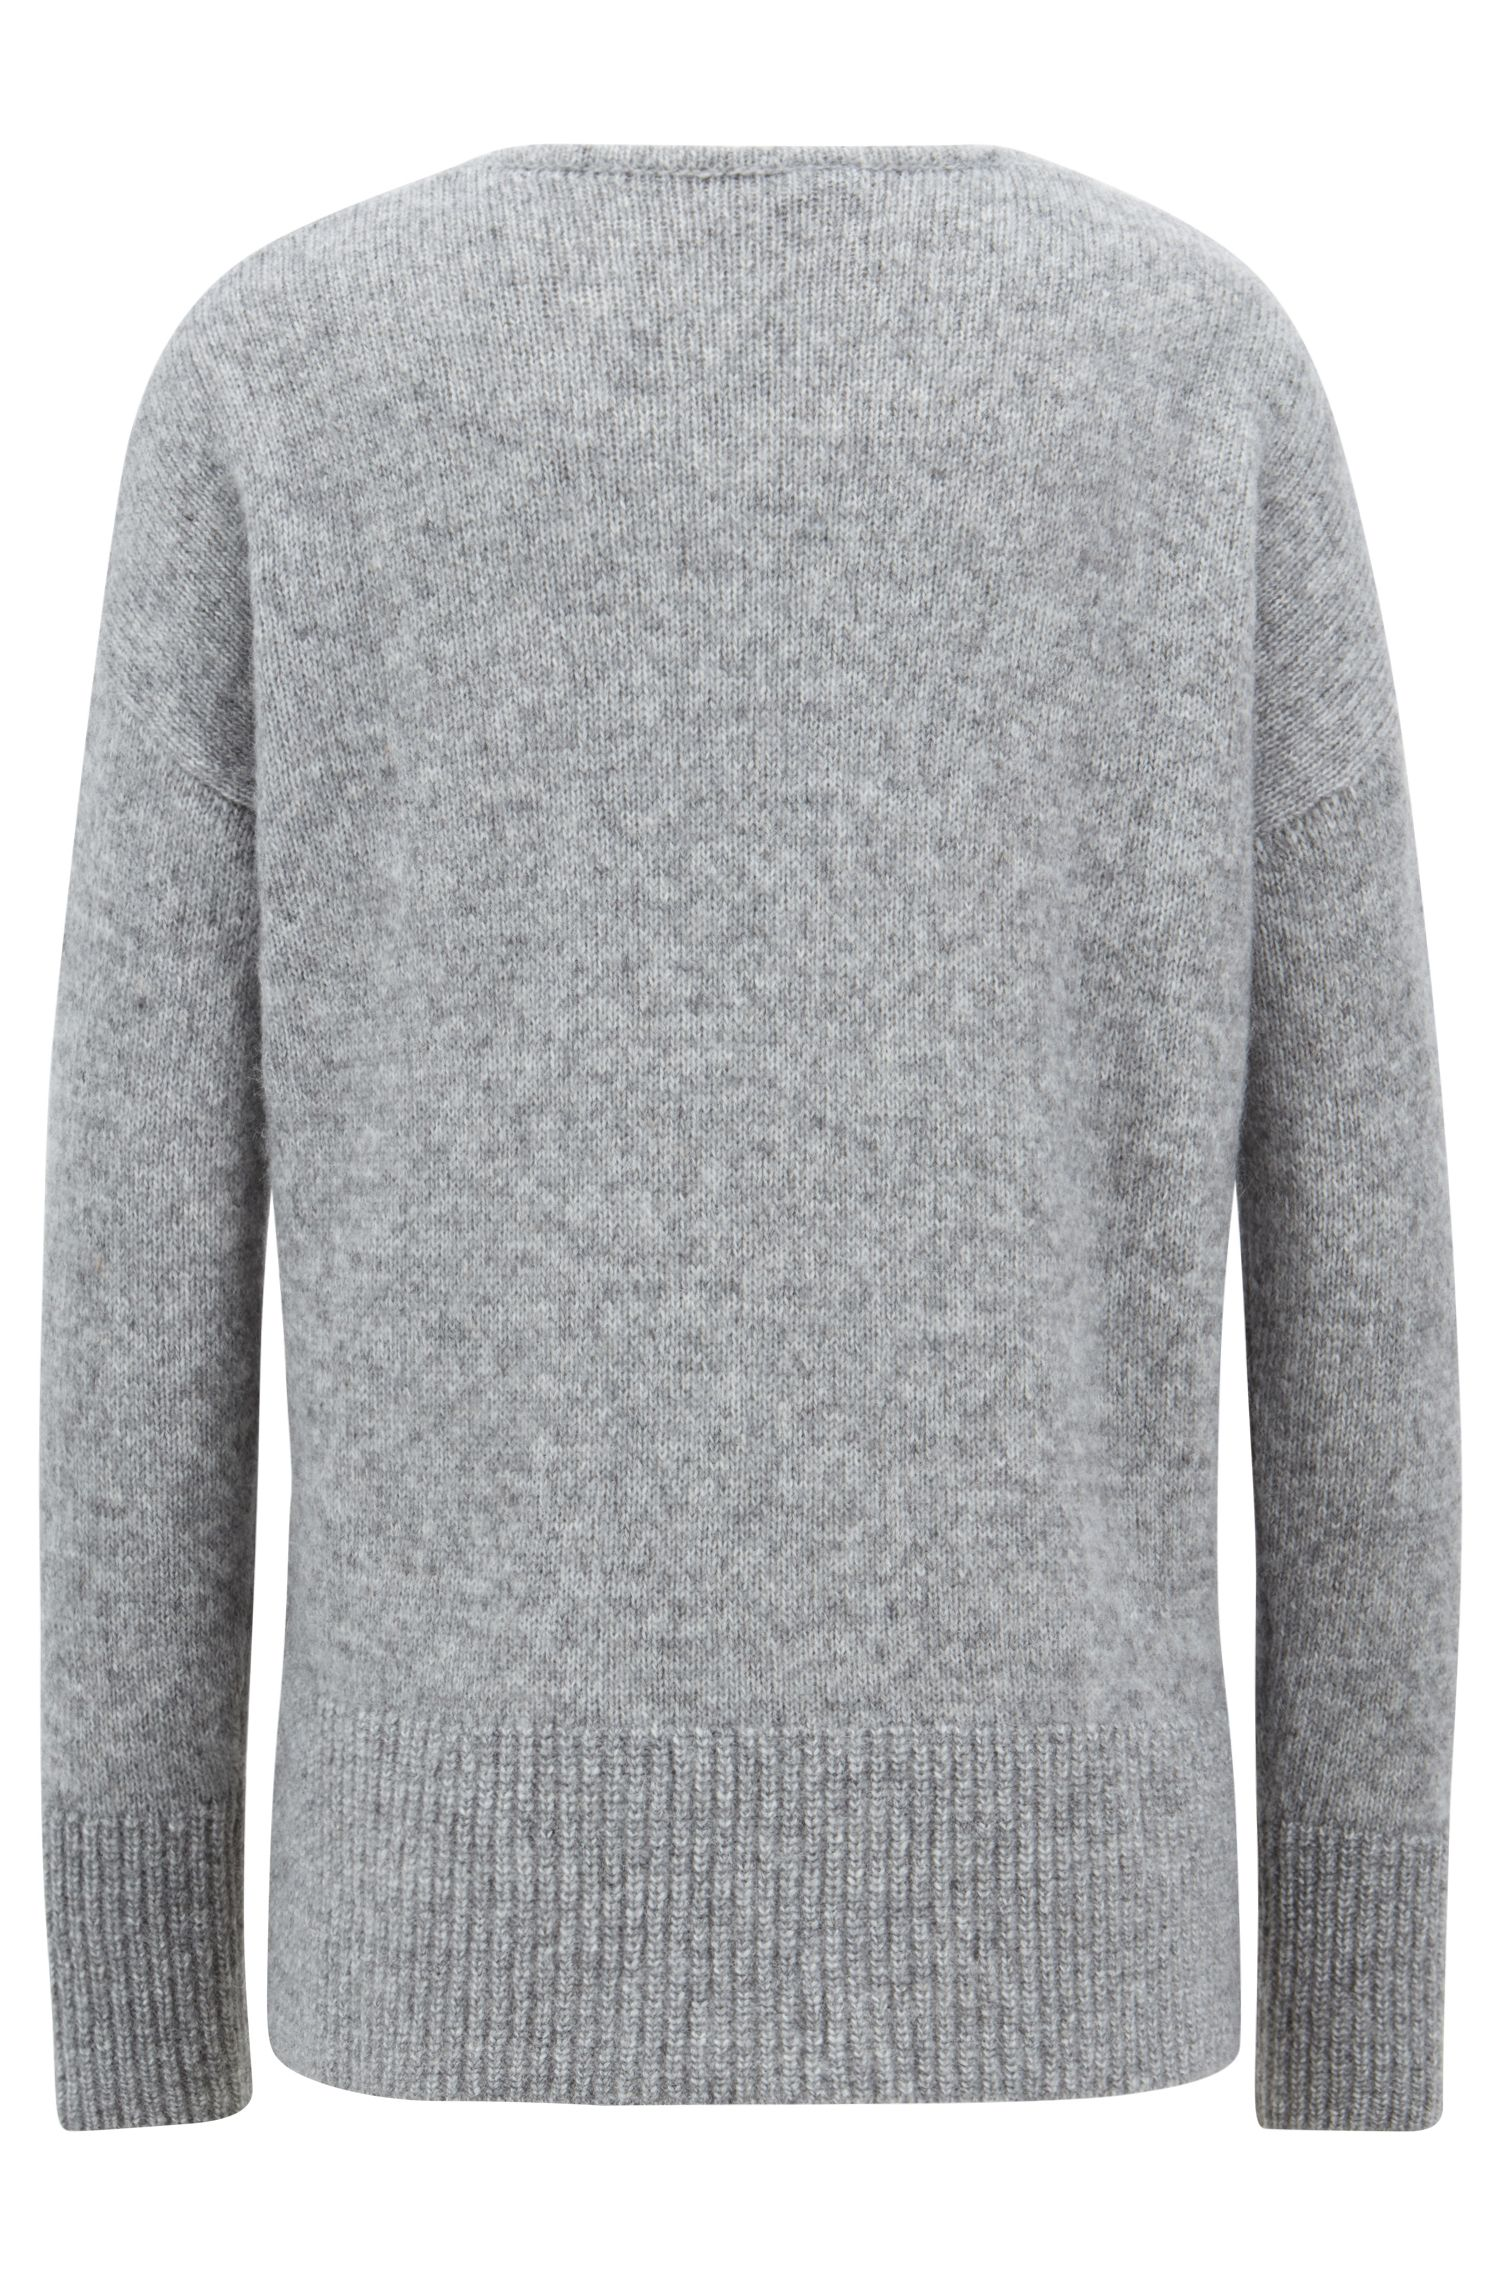 Relaxed-fit V-neck sweater with dropped shoulders, Silver